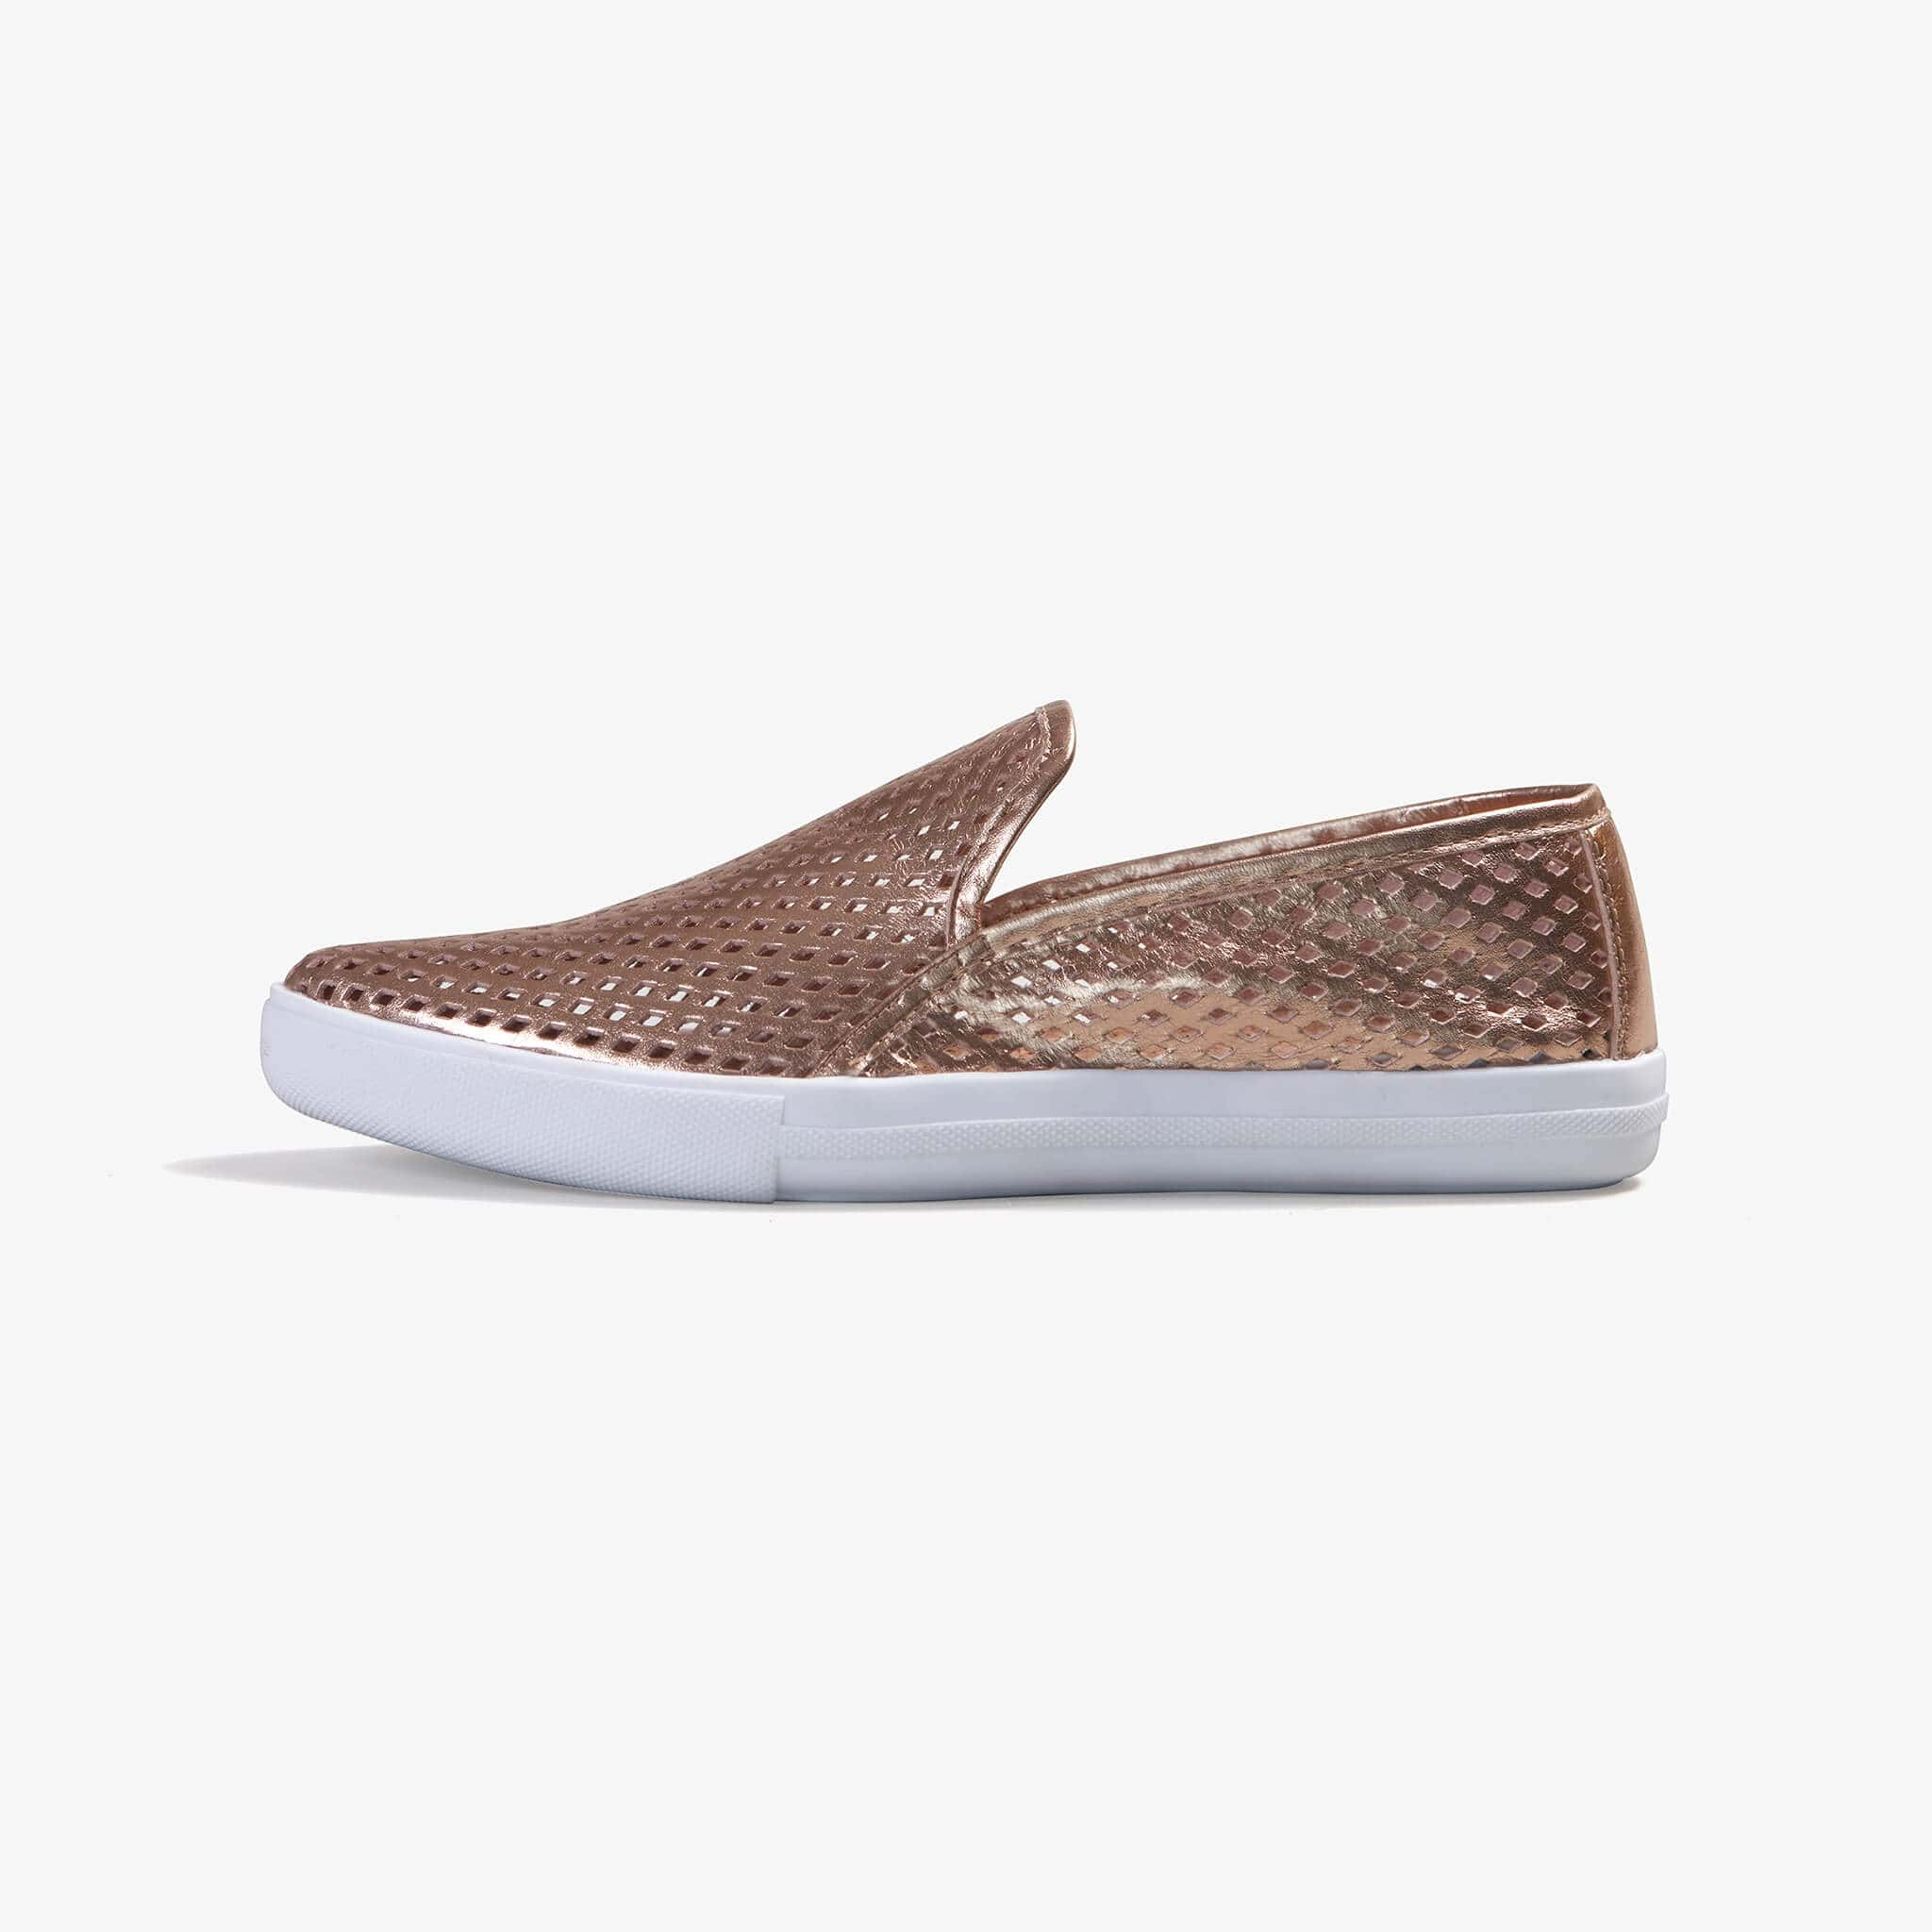 Jibs Slim Rose Gold Slip On Sneaker Flat Shoe Side